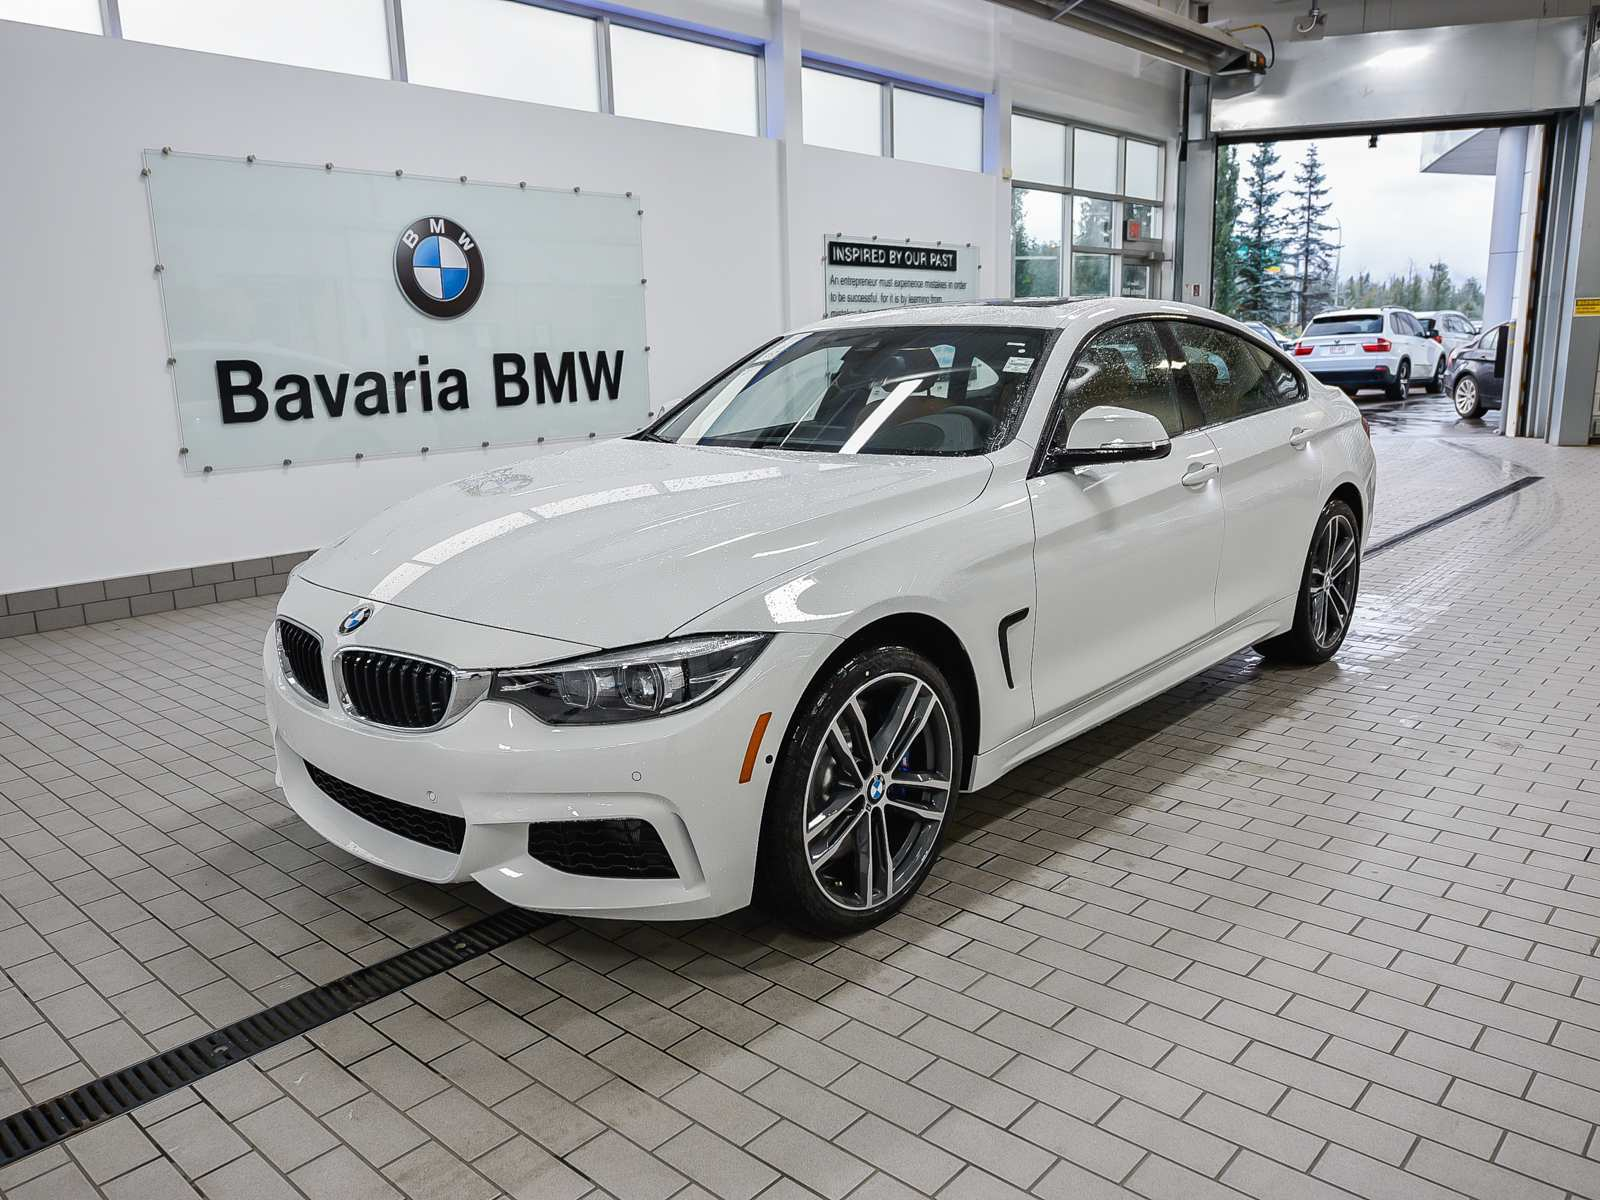 62 All New 2019 Bmw 440I Xdrive Gran Coupe Spesification by 2019 Bmw 440I Xdrive Gran Coupe